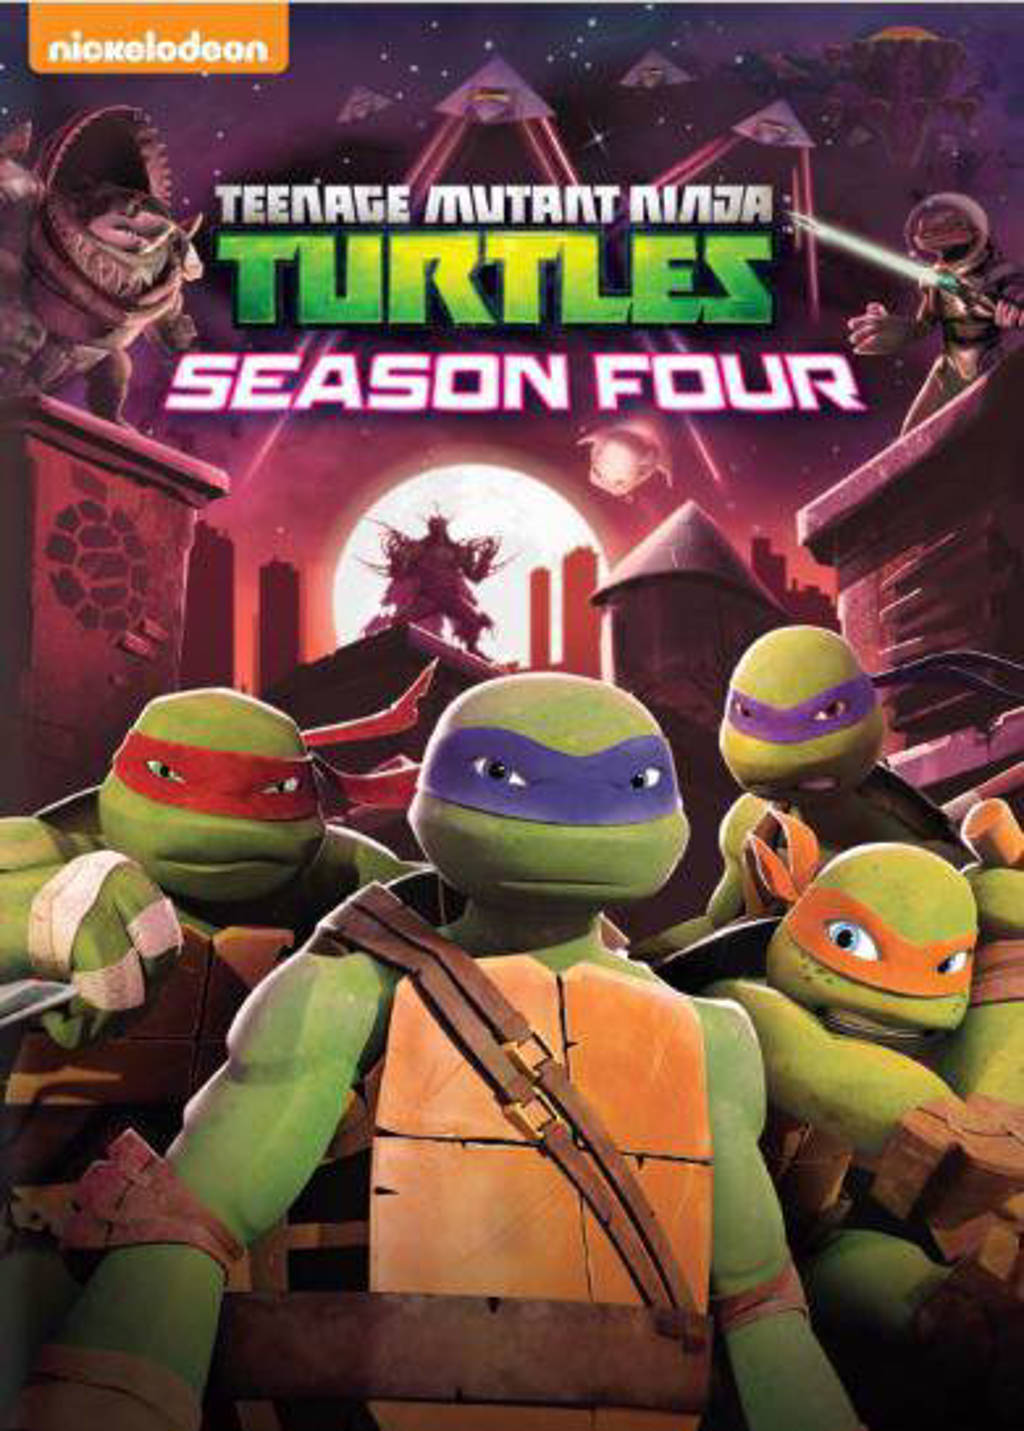 Teenage Mutant Ninja Turtles Seizoen 4 Dvd Wehkamp